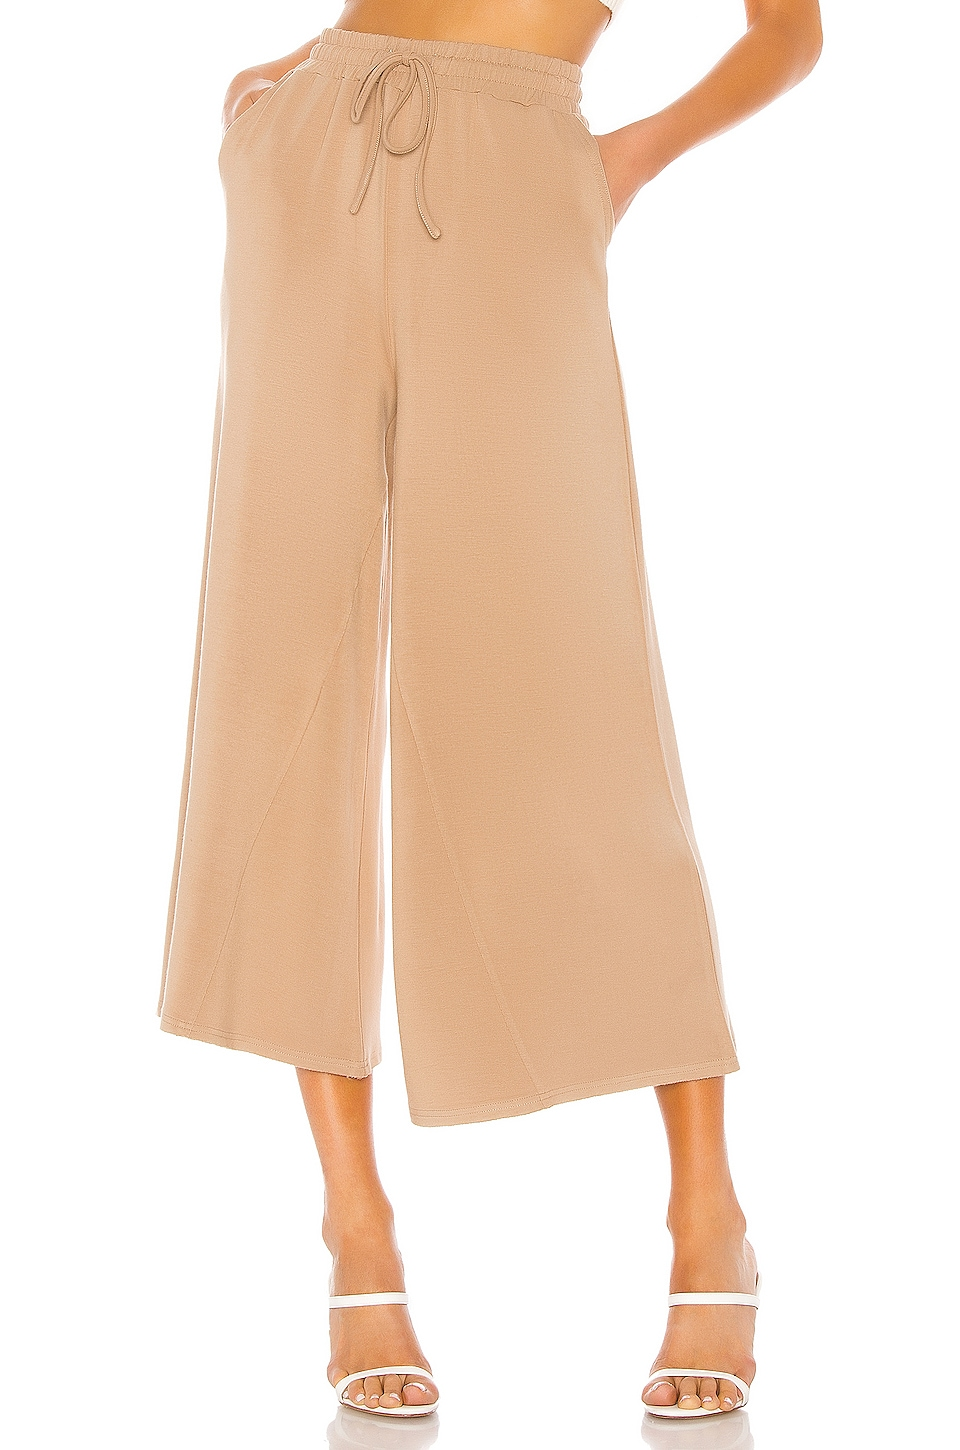 Lovers + Friends Mallorca Pants in Taupe